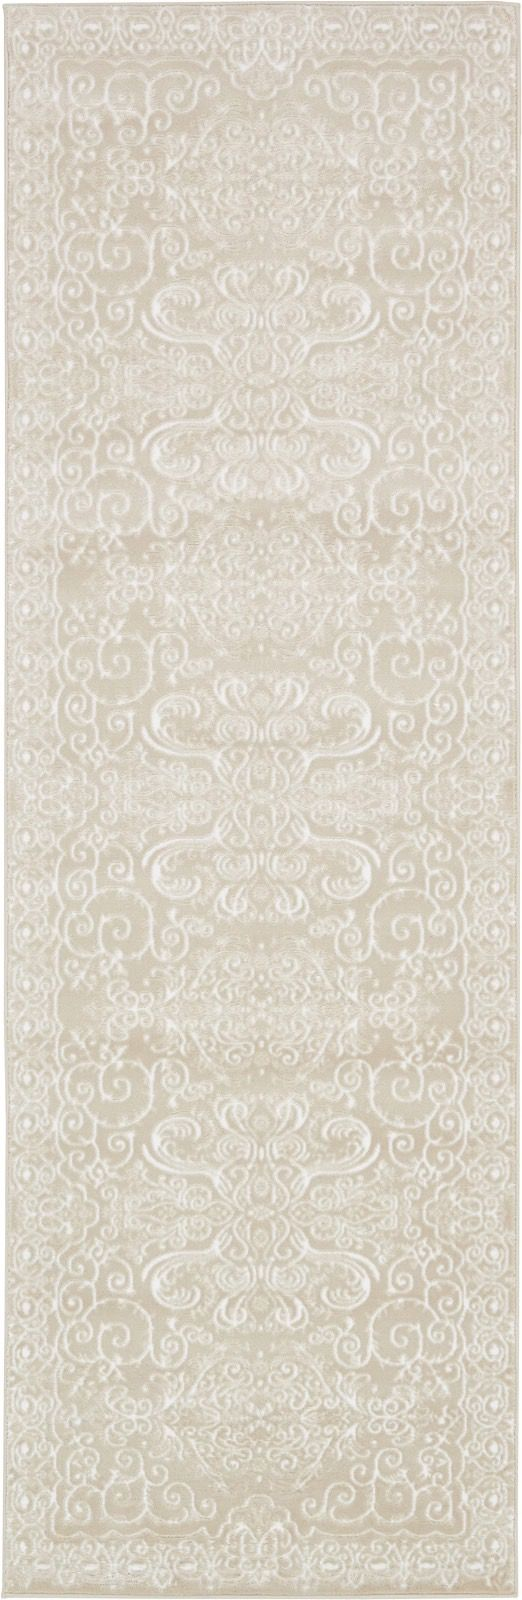 rugpal keystone transitional area rug collection